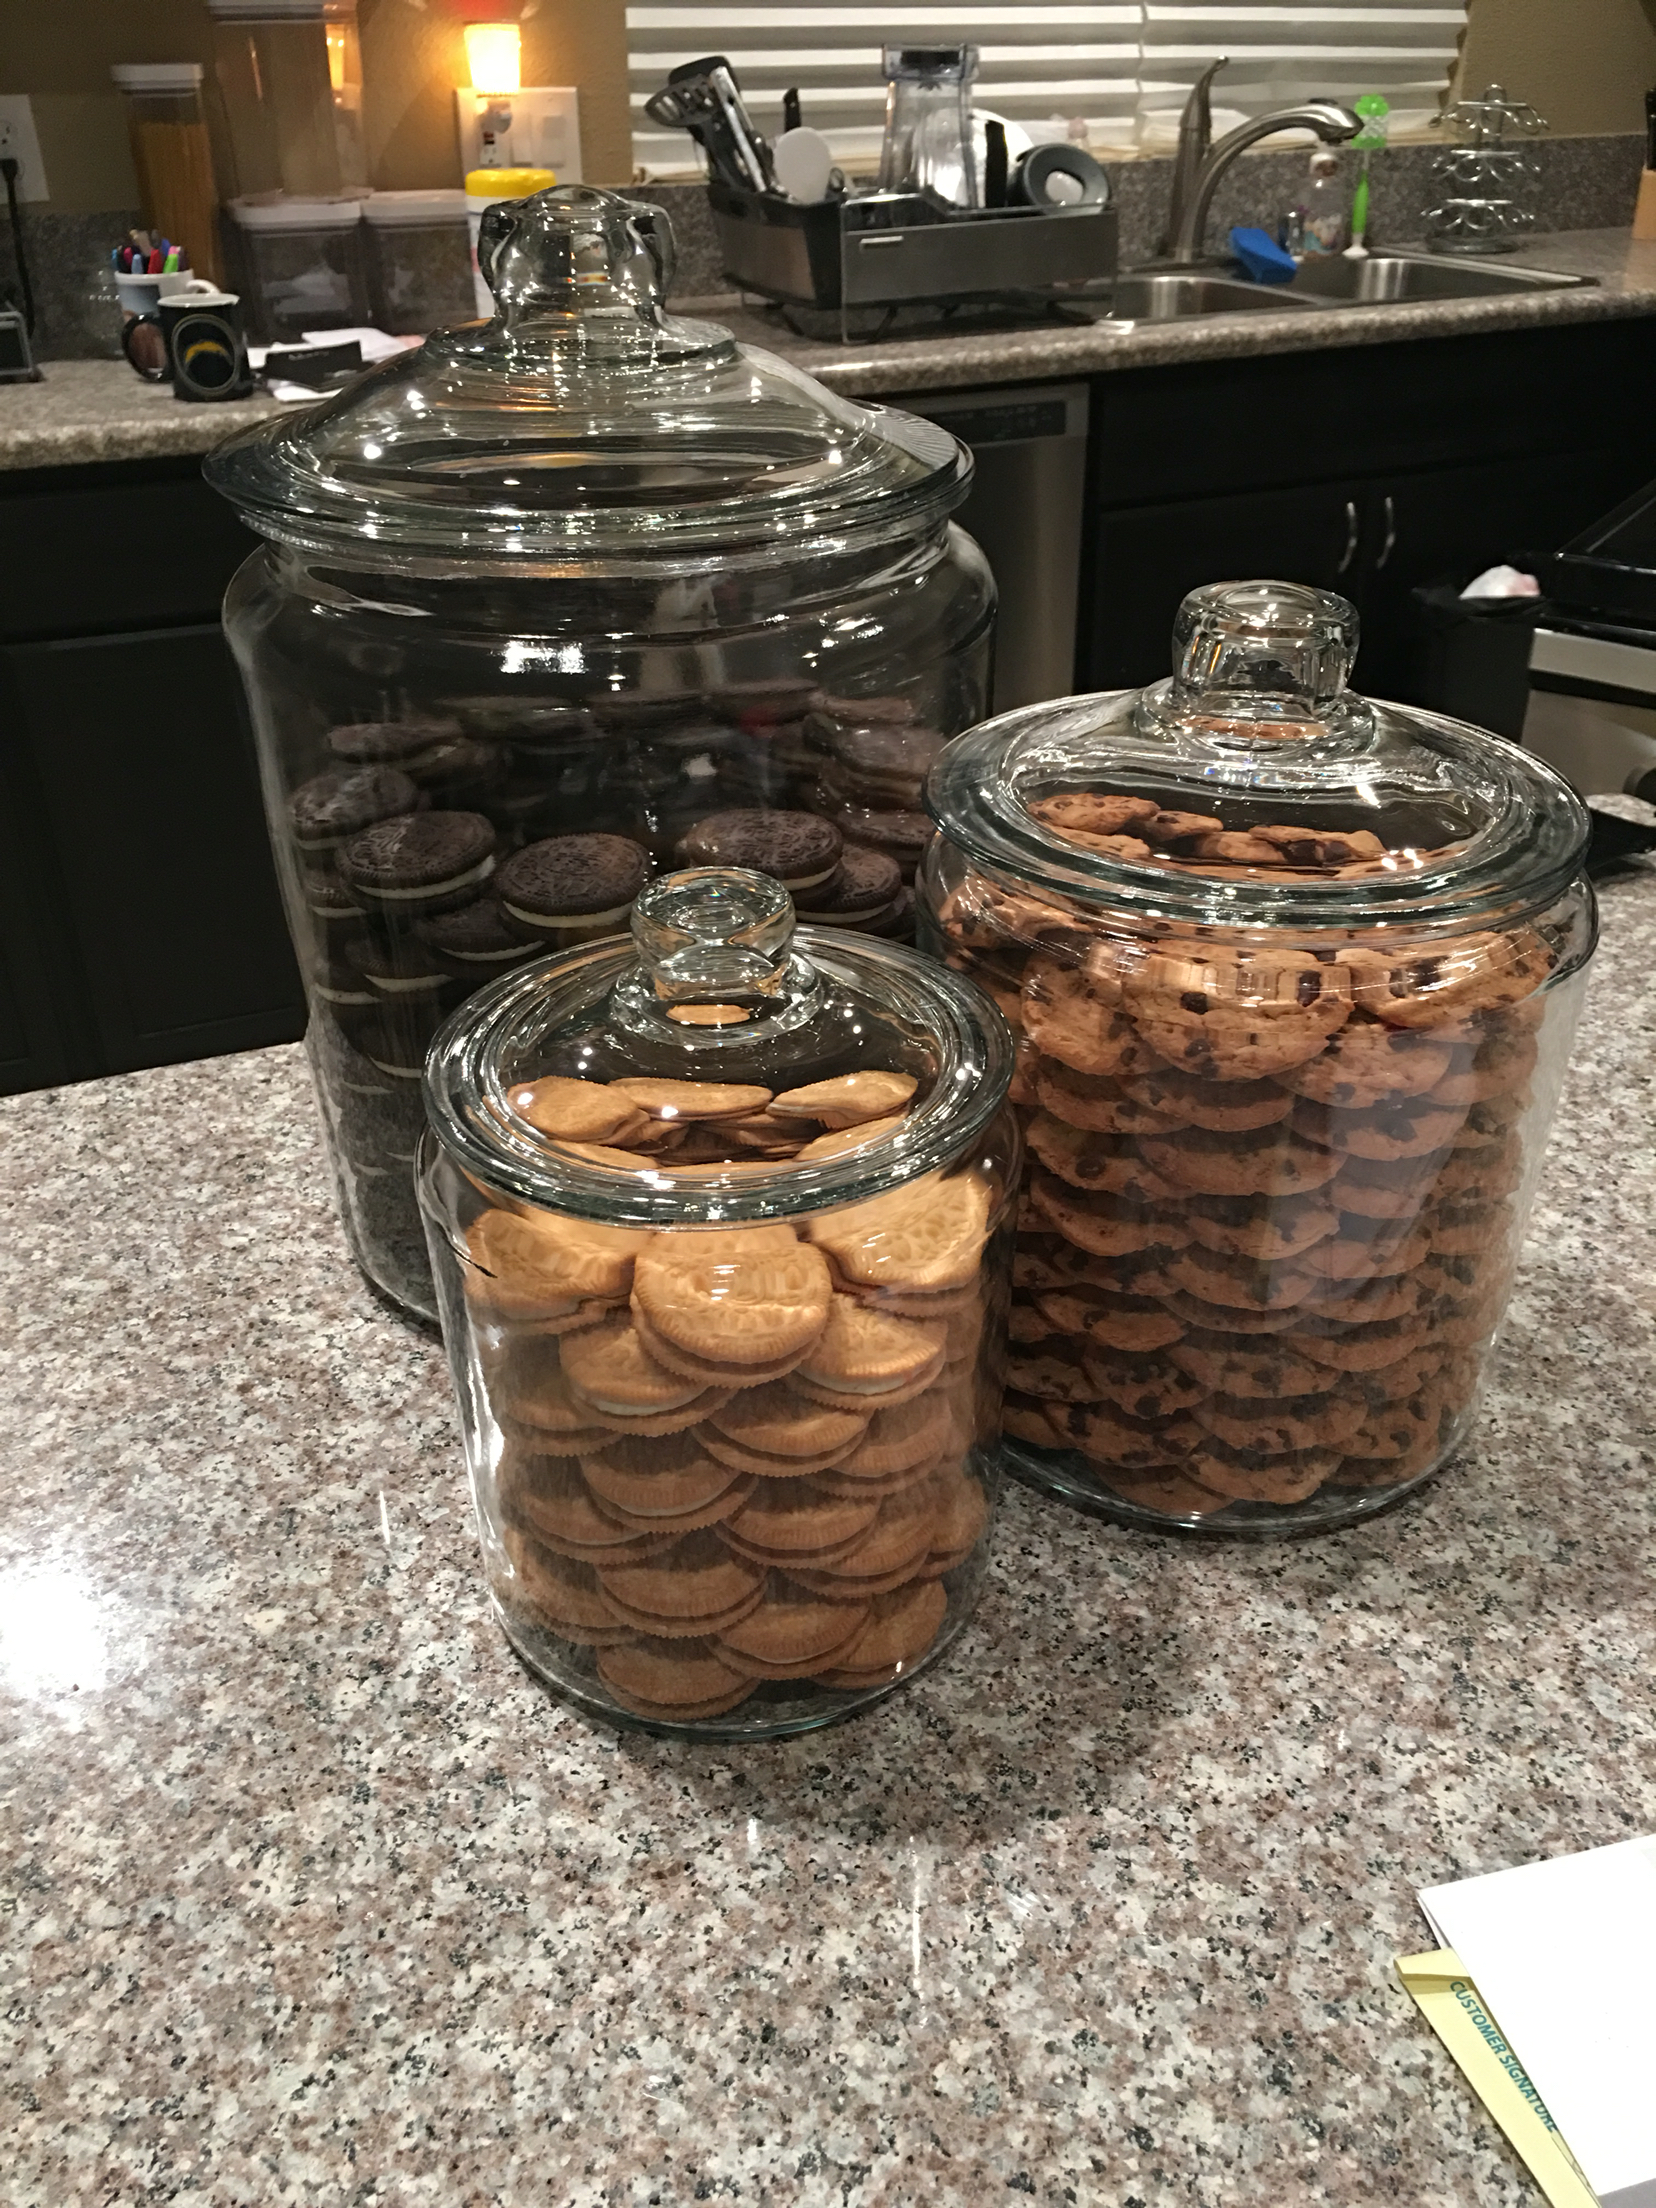 Khloe Kardashian's copy cat cookie jars